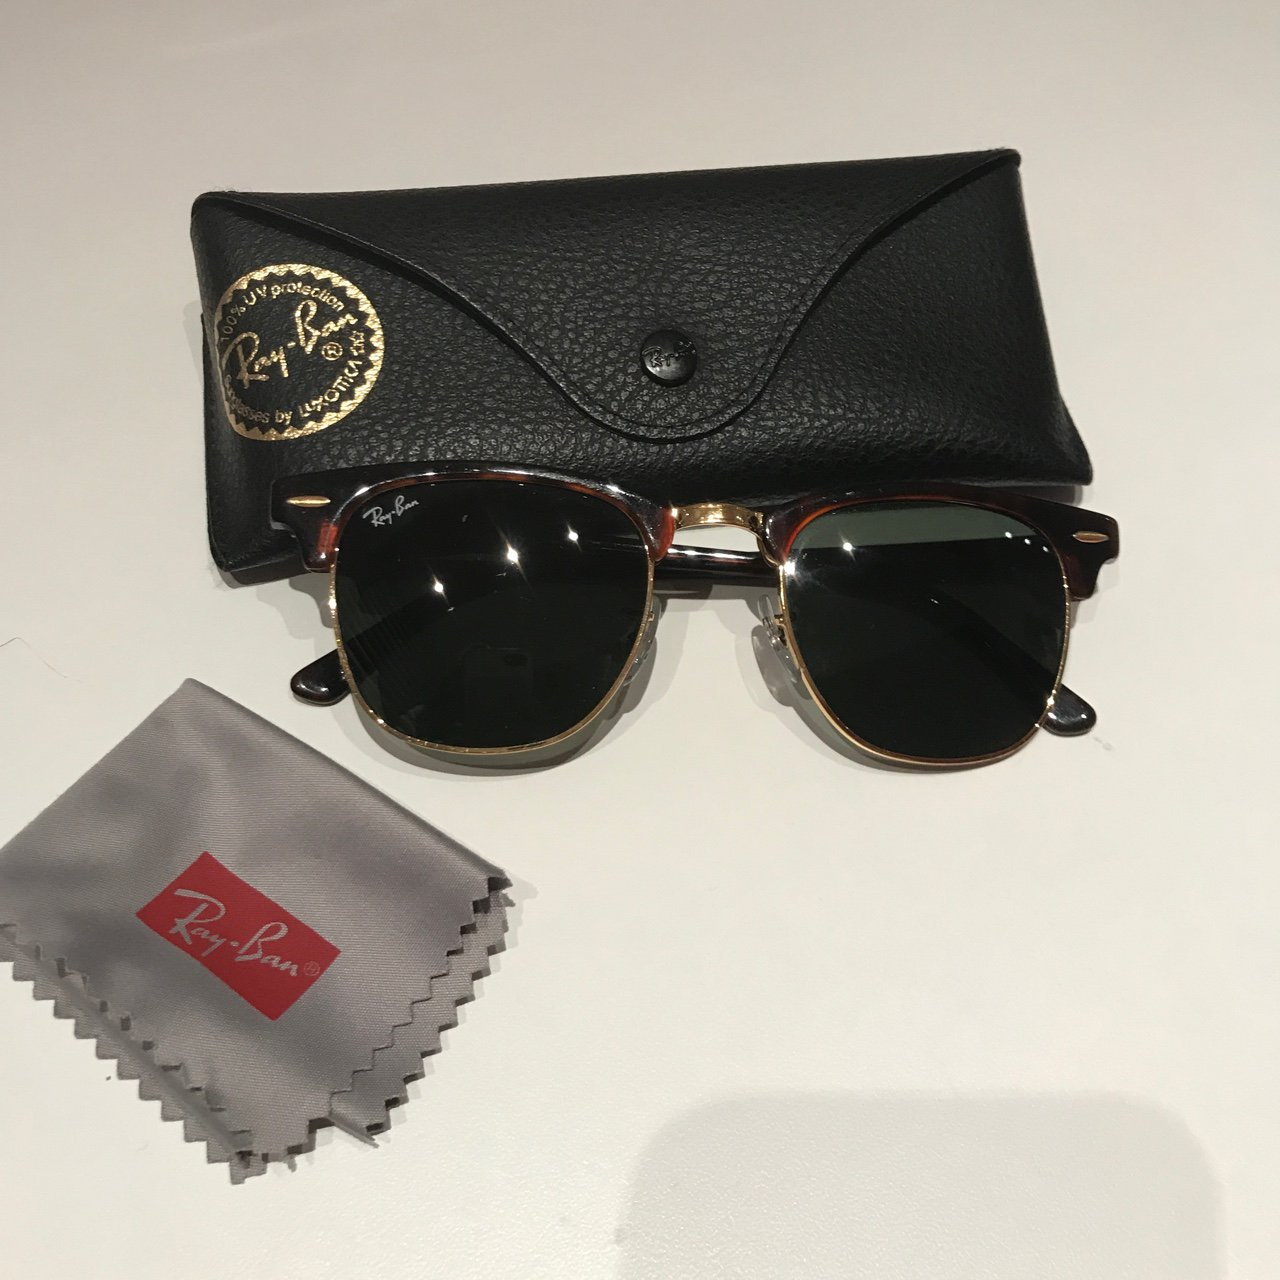 93ae94d3e67 Ray-Ban Clubmaster in size 49mm has a semi-rimless red frame - Depop